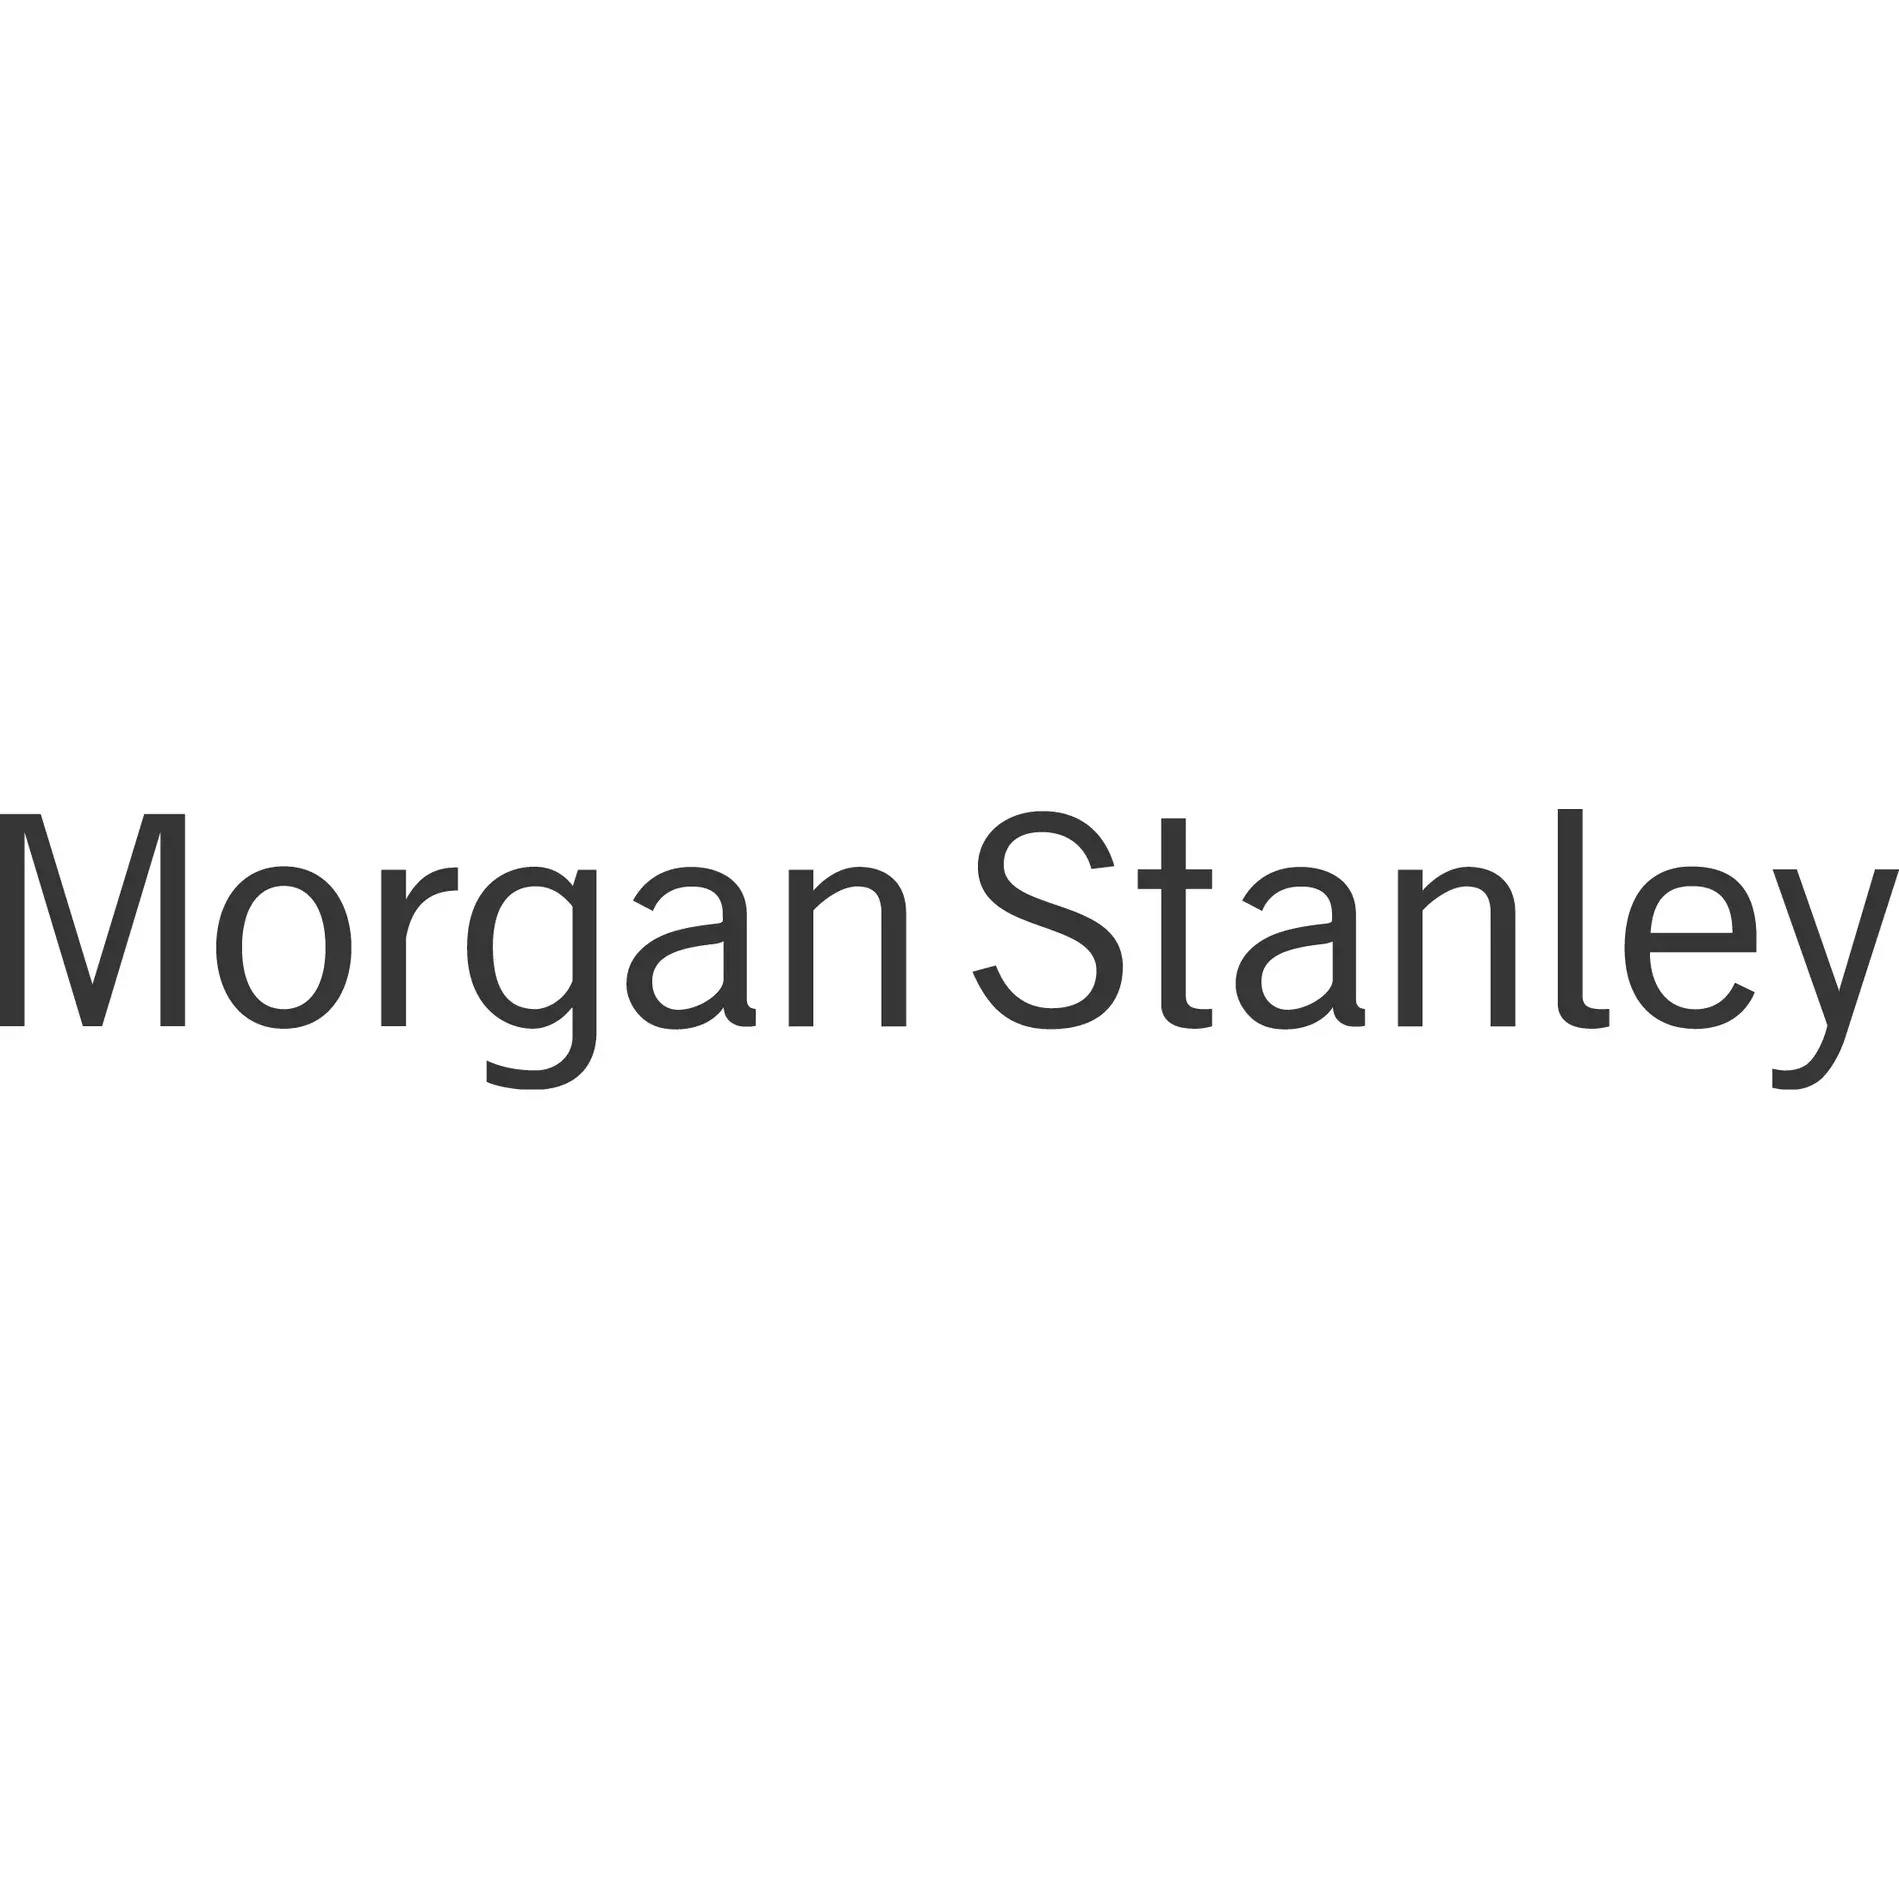 Jared Incinelli - Morgan Stanley